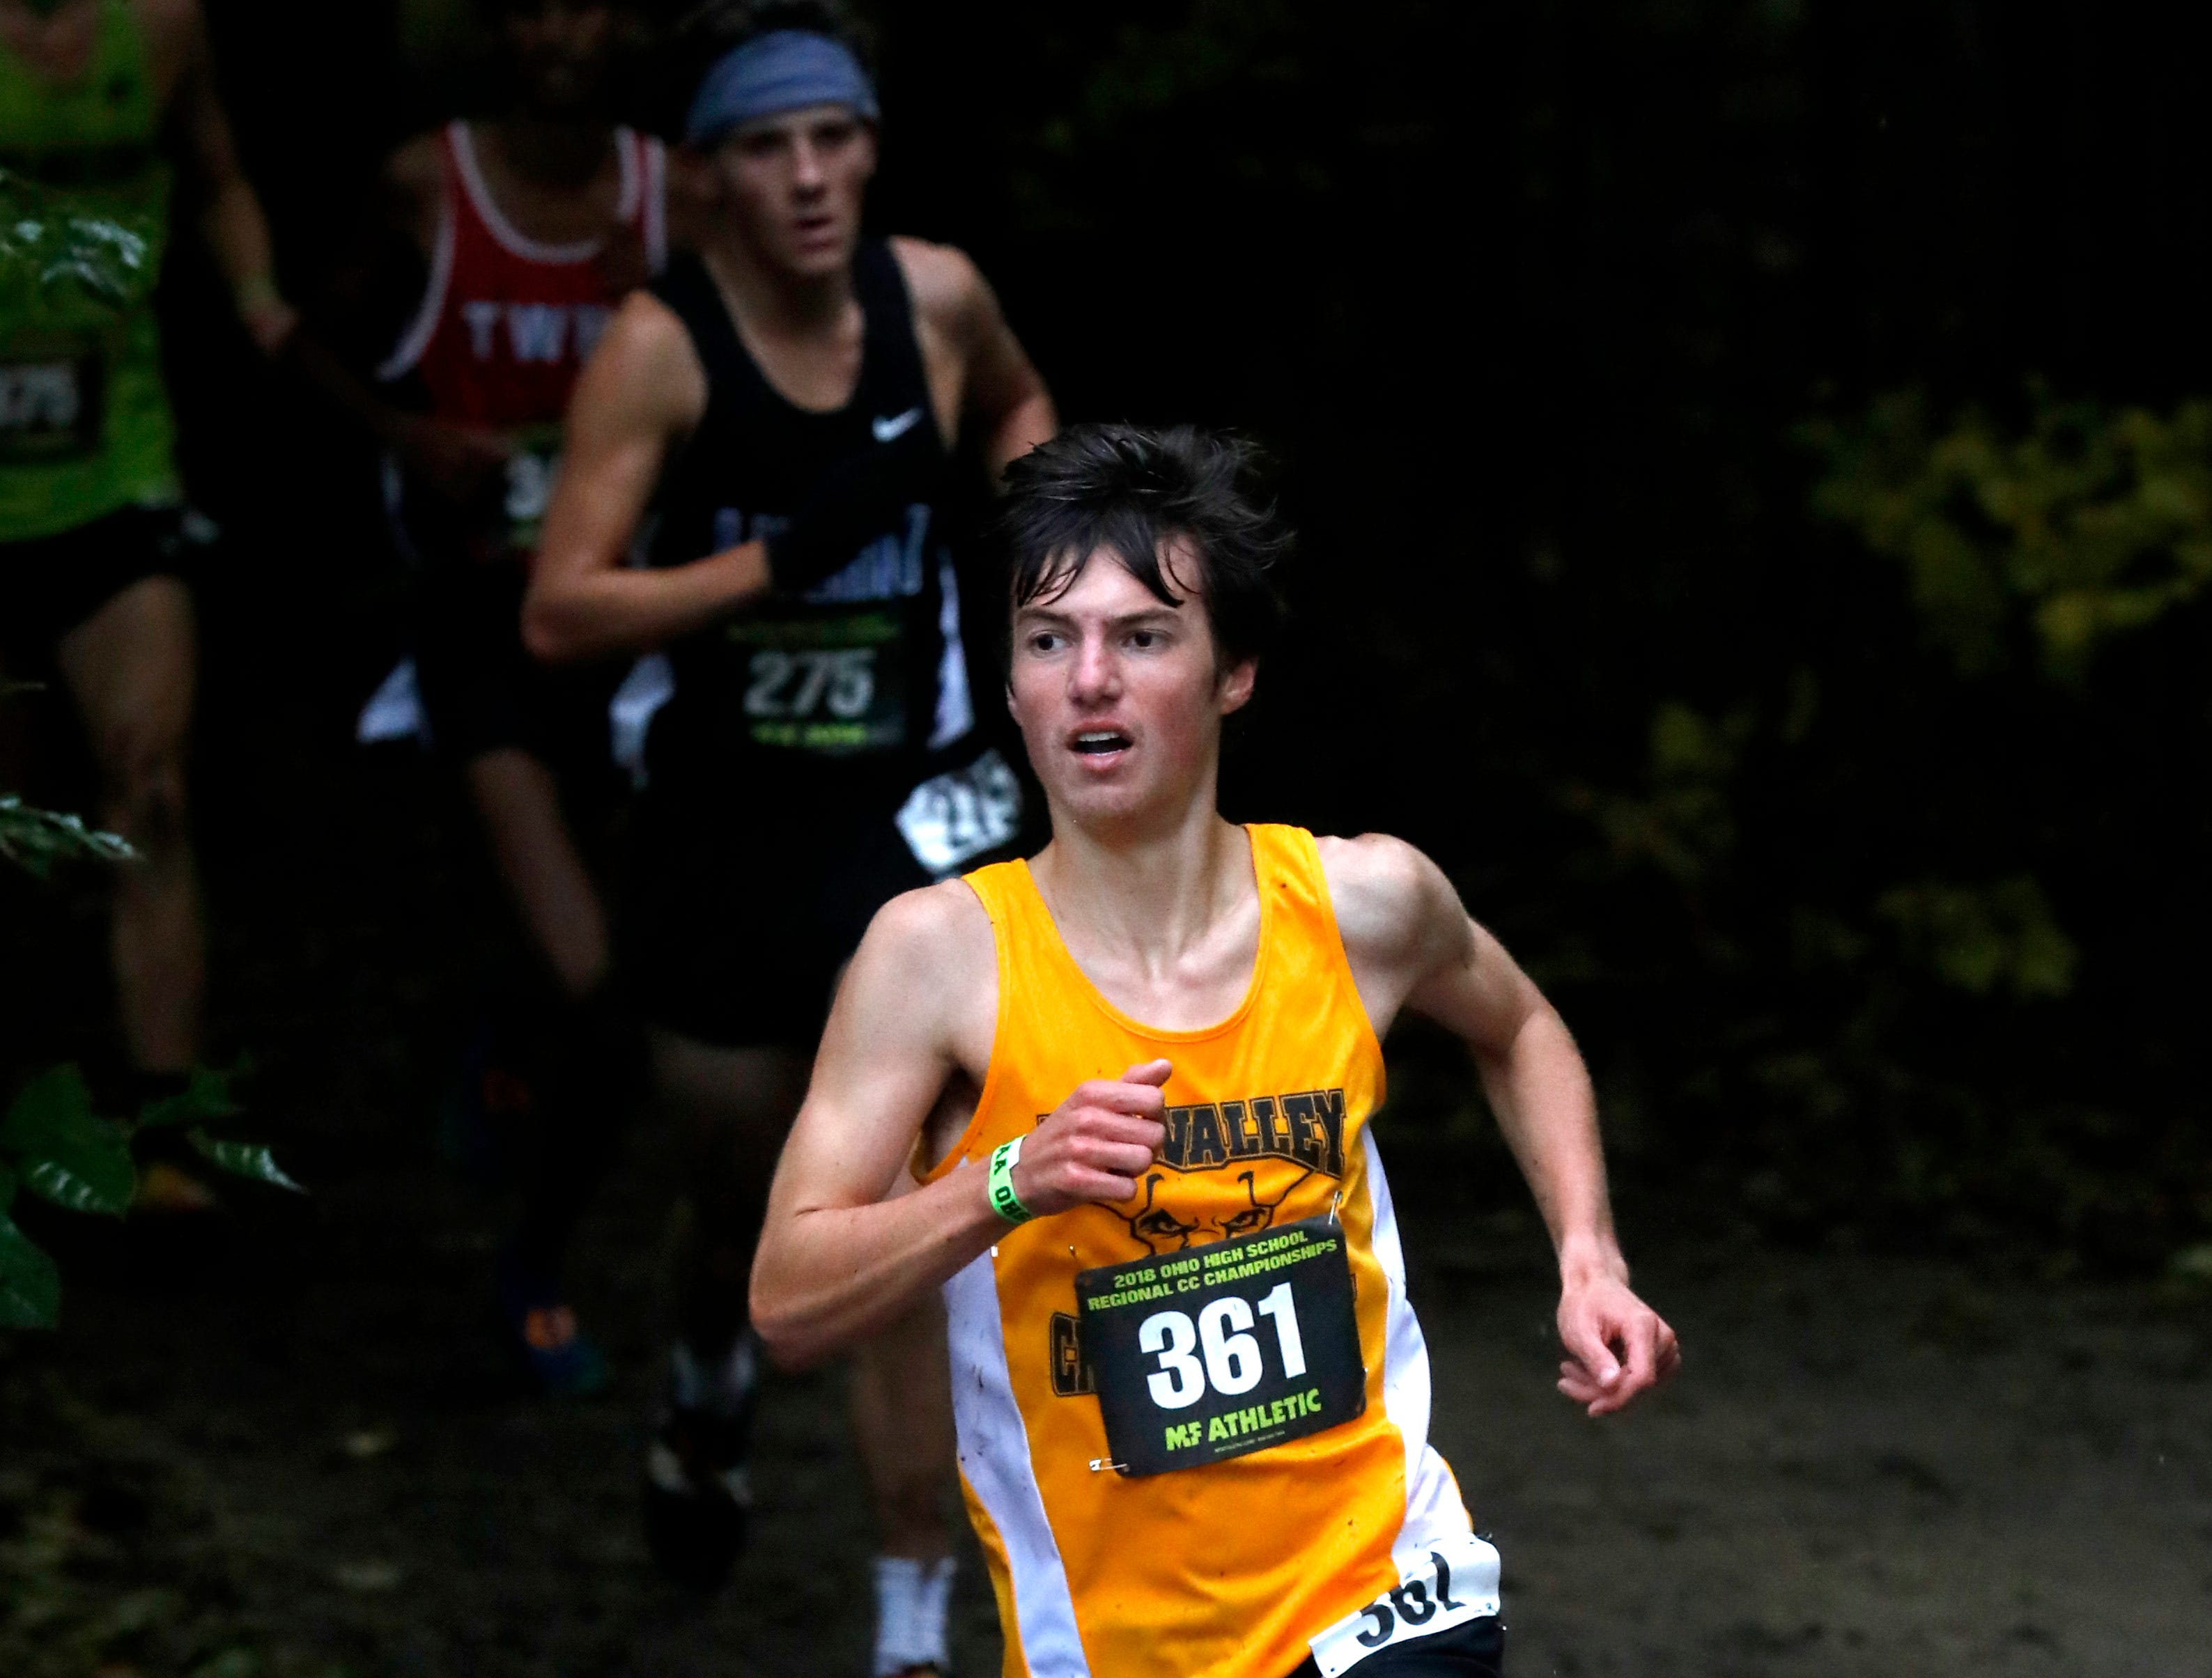 Tri-Valley's Ryan Meadows  posted his best time earlier this season of 16:13 at Thomas Worthington. His coach, Herb Fitzer said Meadows believes he can go as low as 15:30, which would be key in stepping ontothe podium.